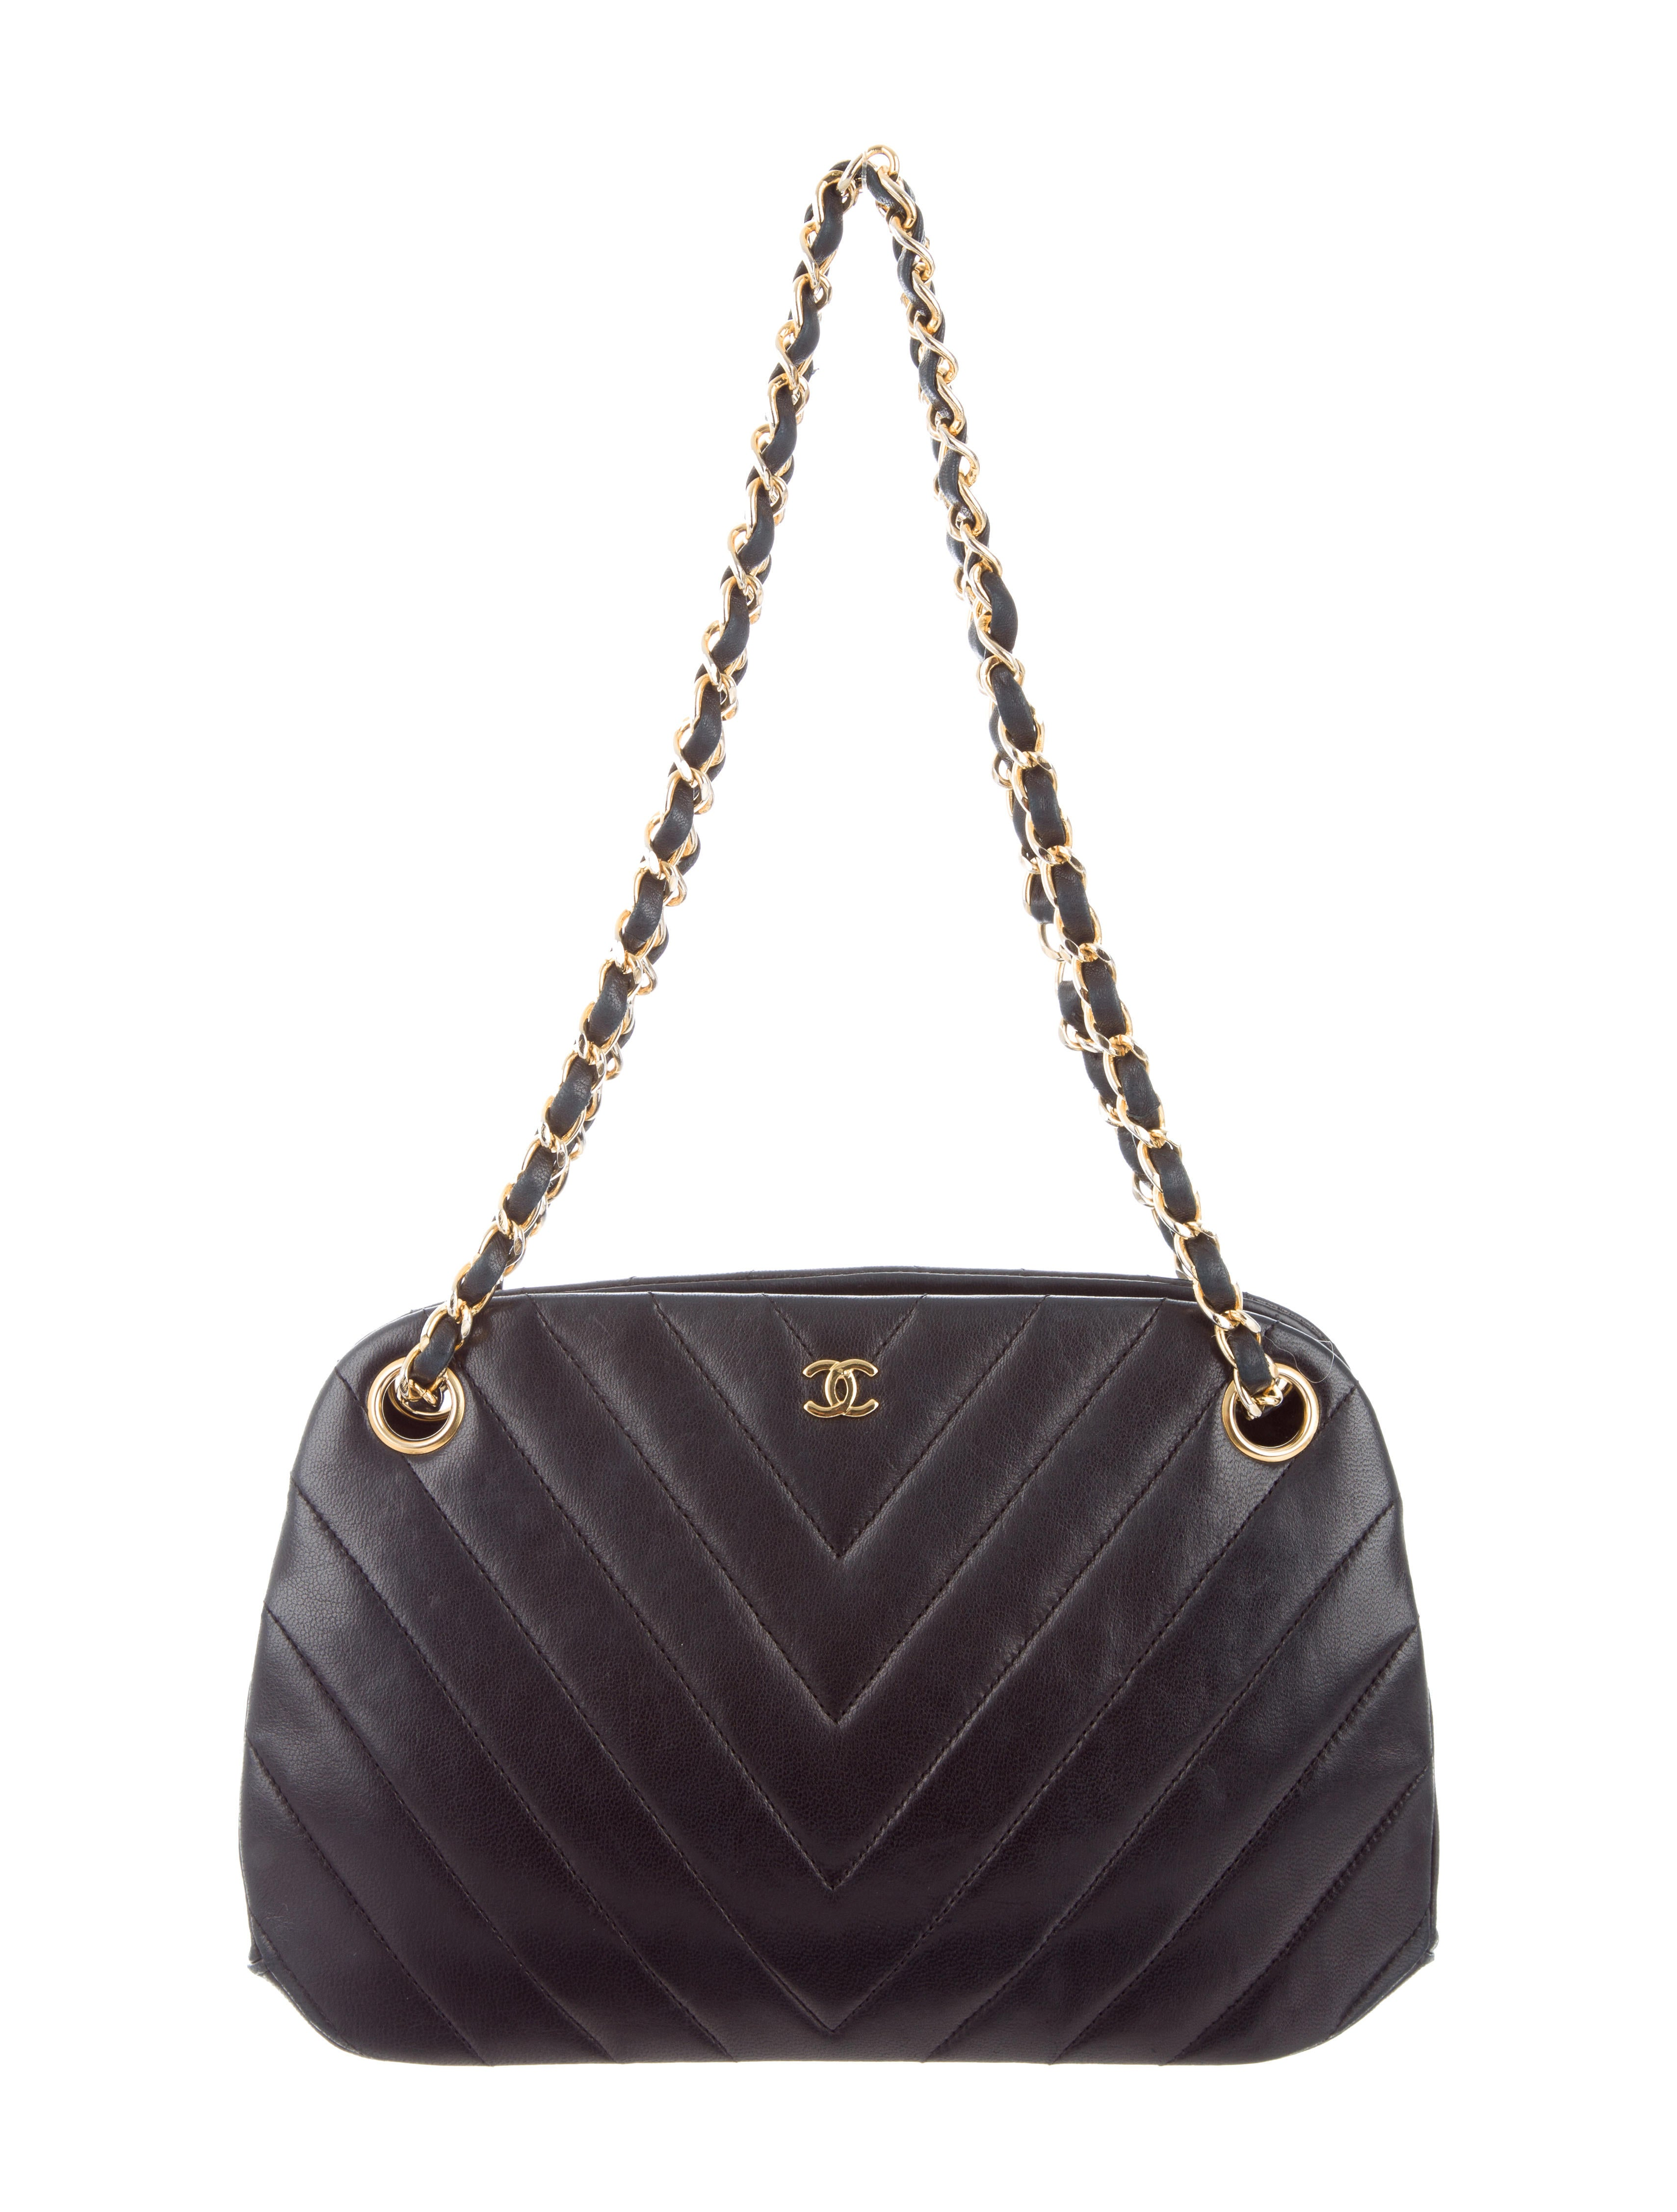 9d9c6bbdd04a Chanel Purses Handbags Lambskin | Stanford Center for Opportunity ...